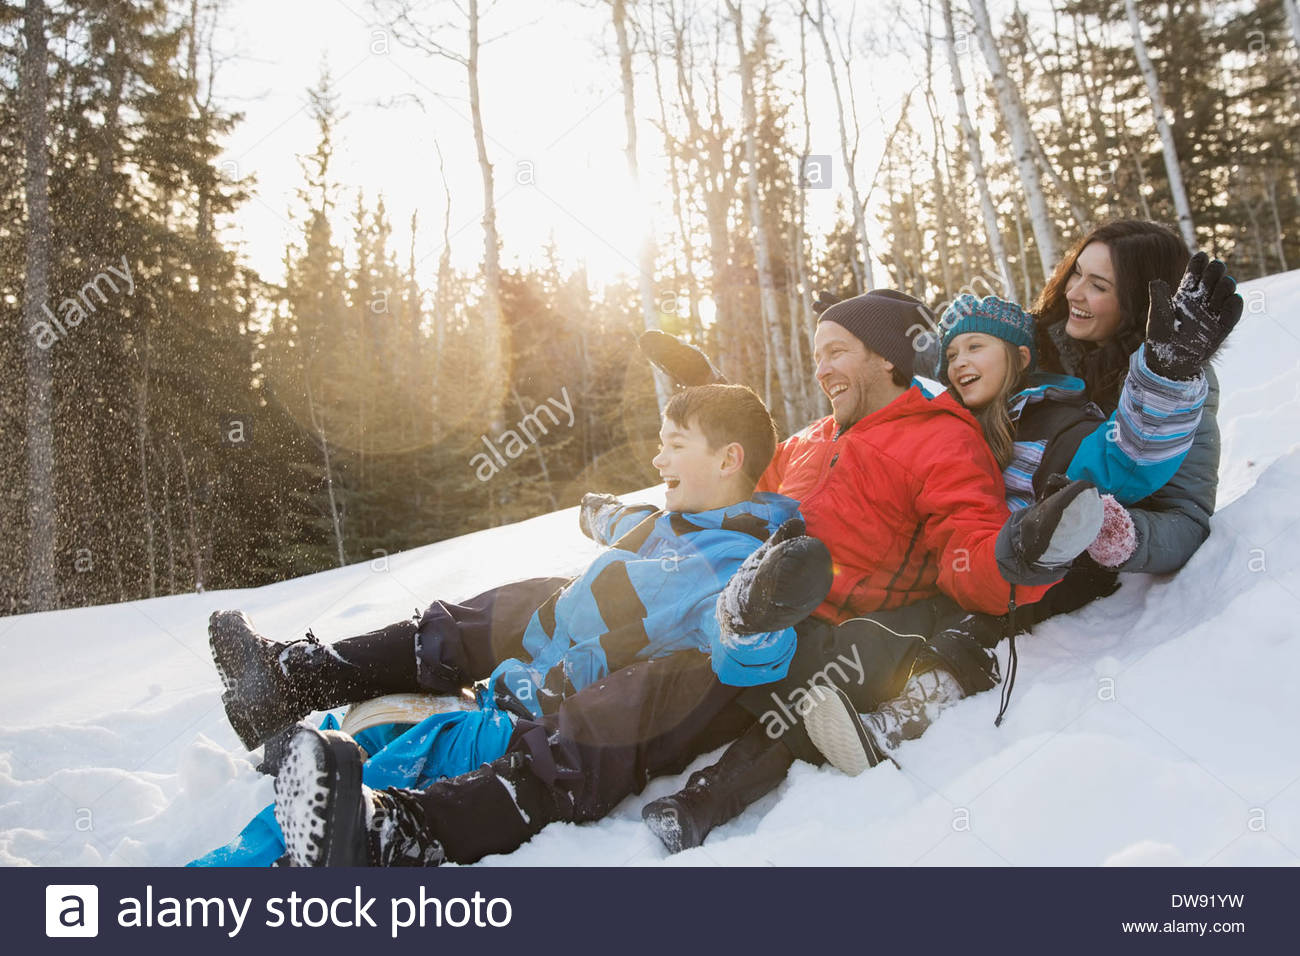 Family riding on toboggan down hill - Stock Image